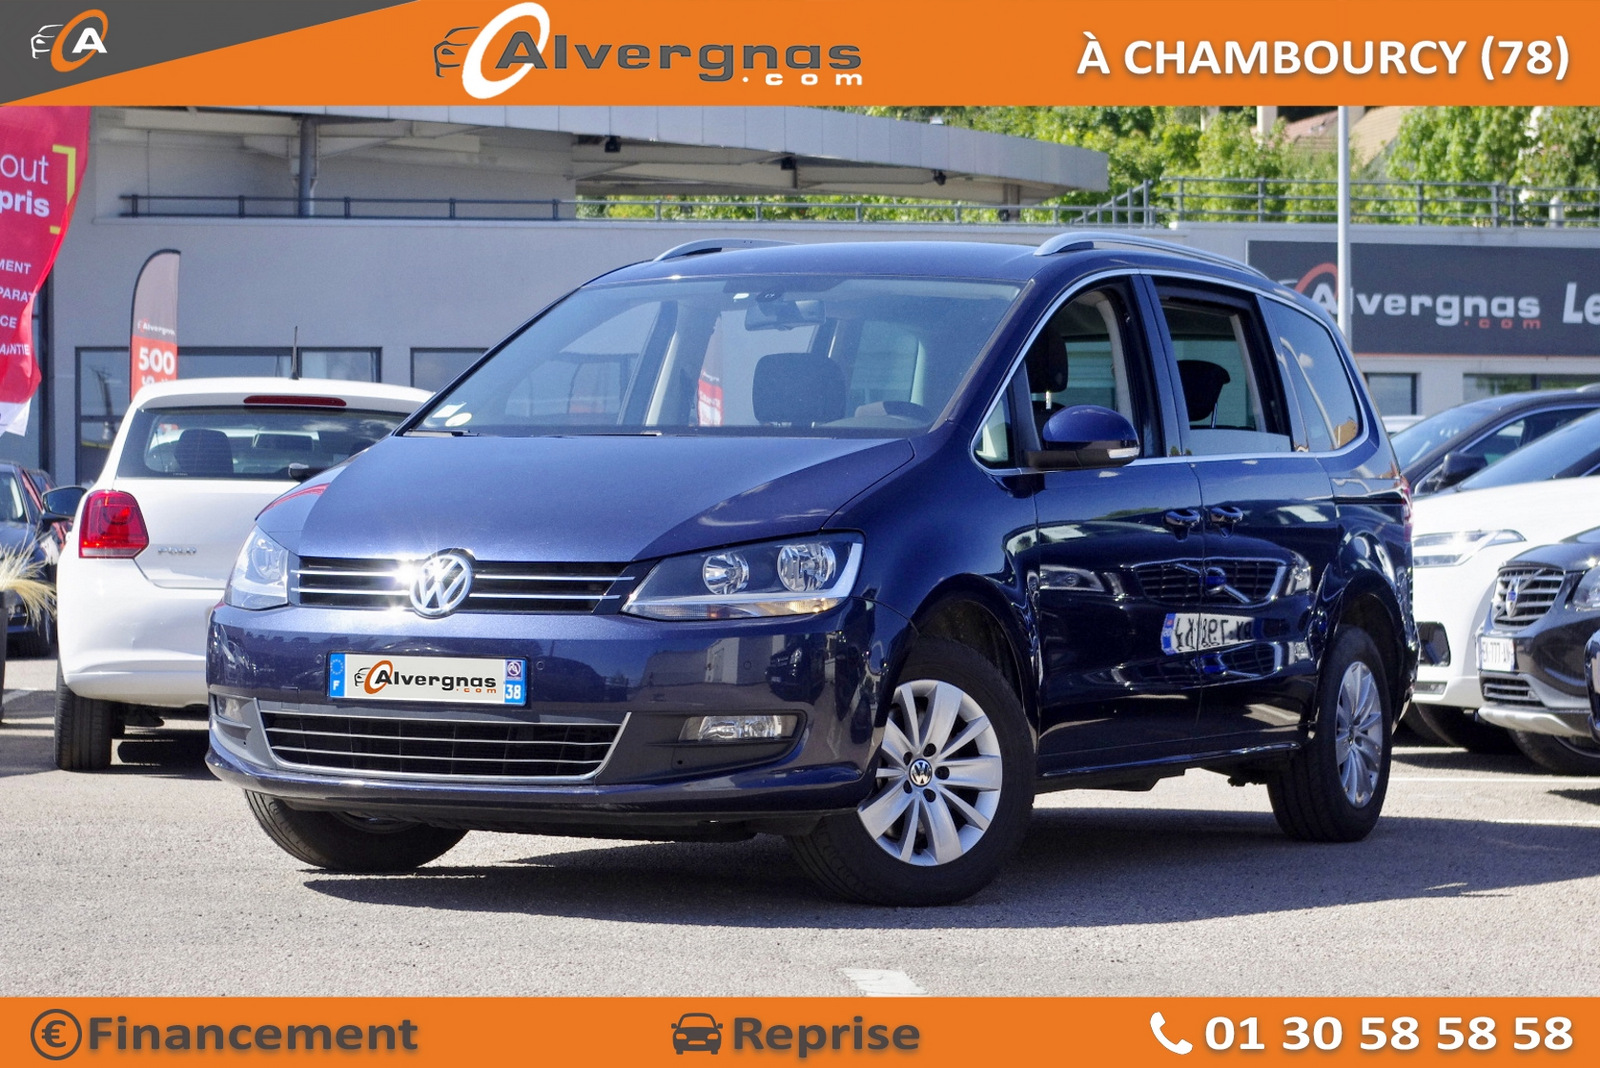 VOLKSWAGEN SHARAN d'occasion sur Paris